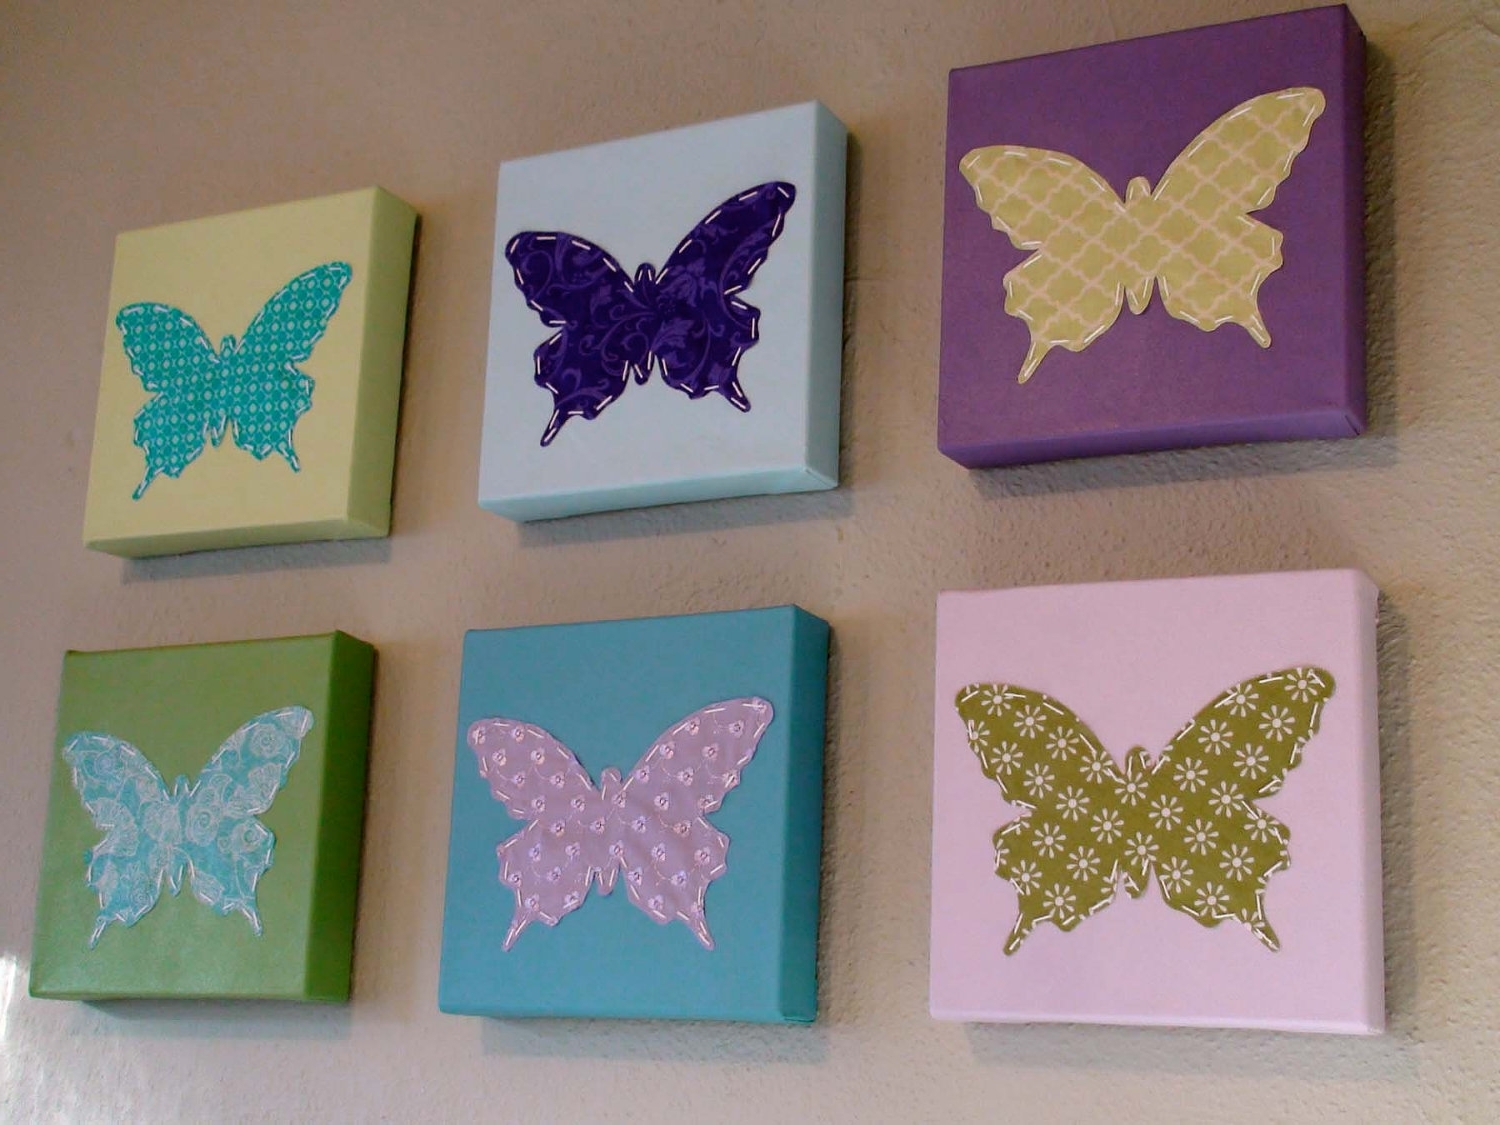 Girls Canvas Wall Art Within Recent Wall Art: Sample Ideas Butterfly Canvas Wall Art 3D Butterfly Wall (View 11 of 15)